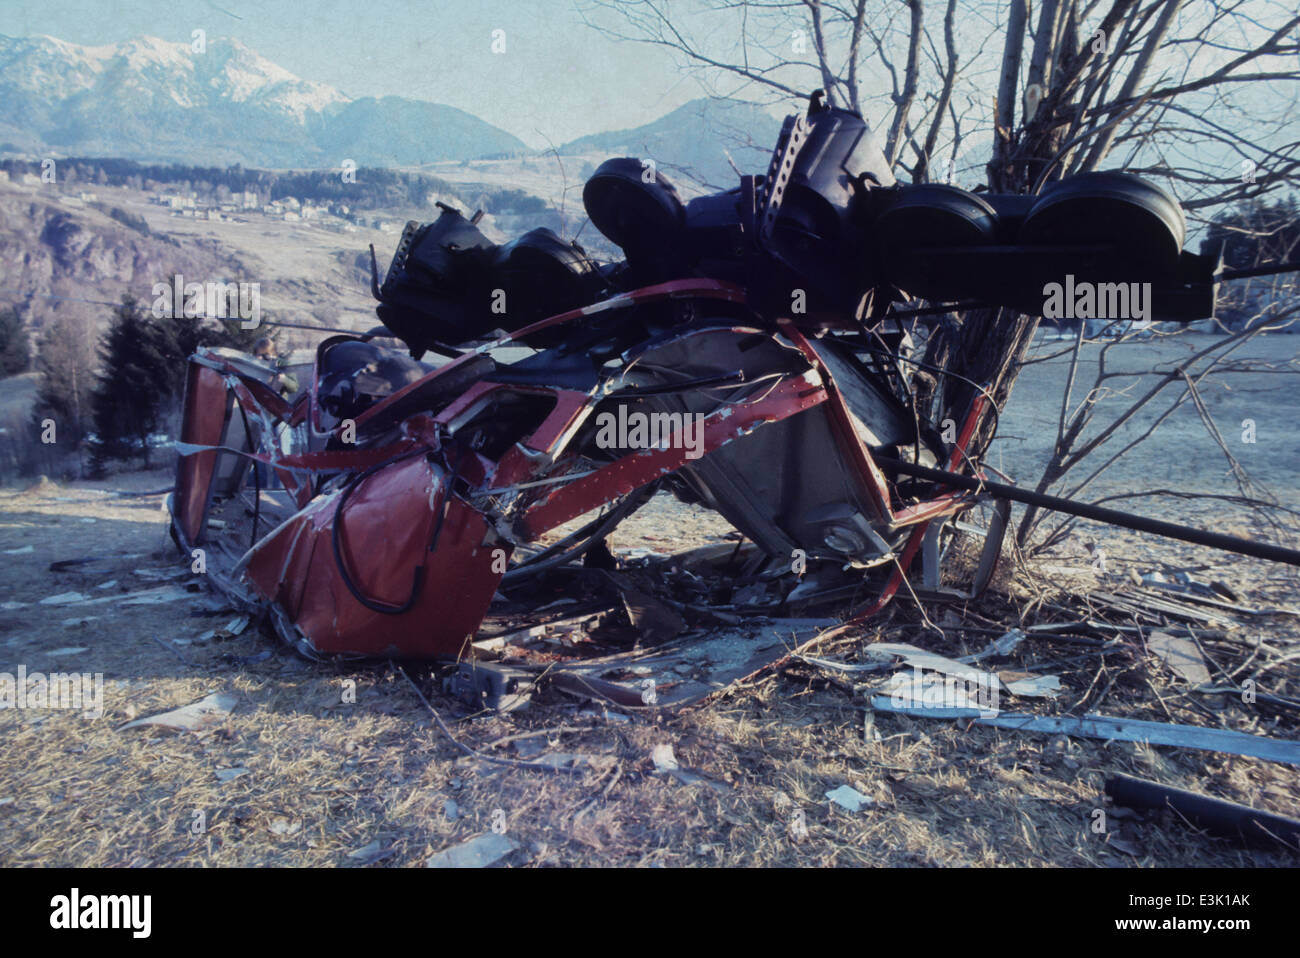 cableway incident,70's - Stock Image